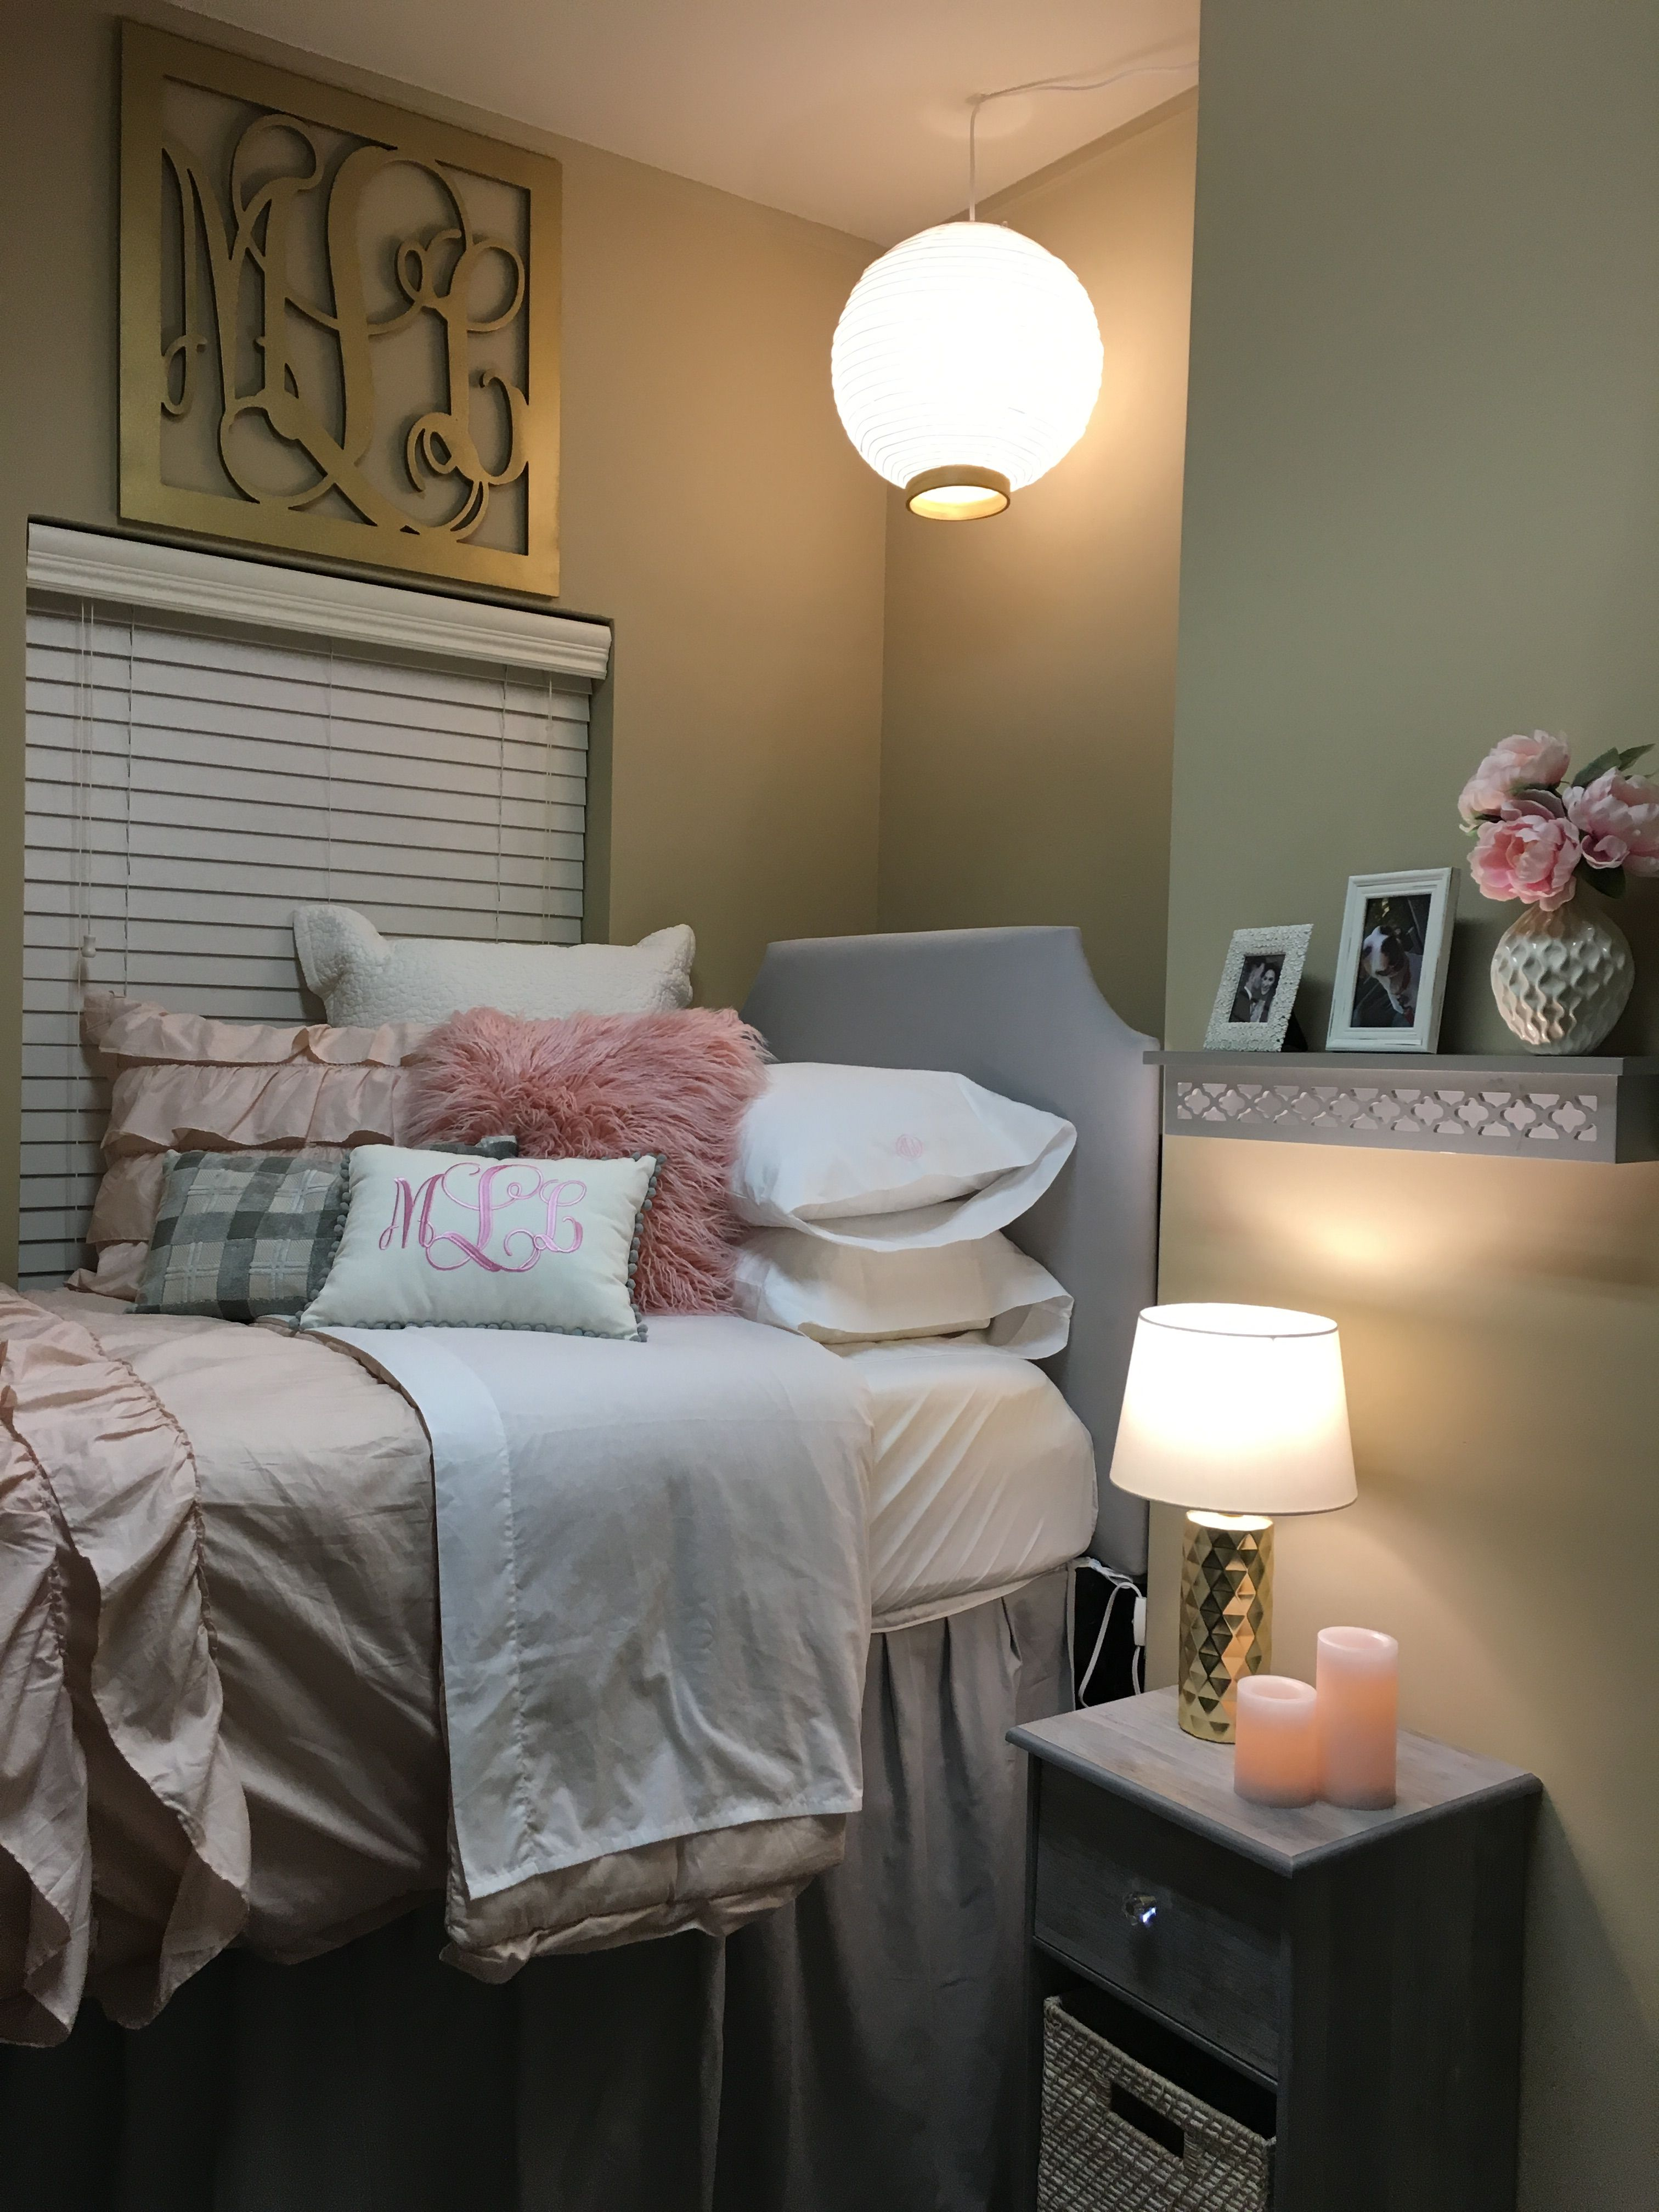 Presidential I University of Alabama MLL Bedrooms in